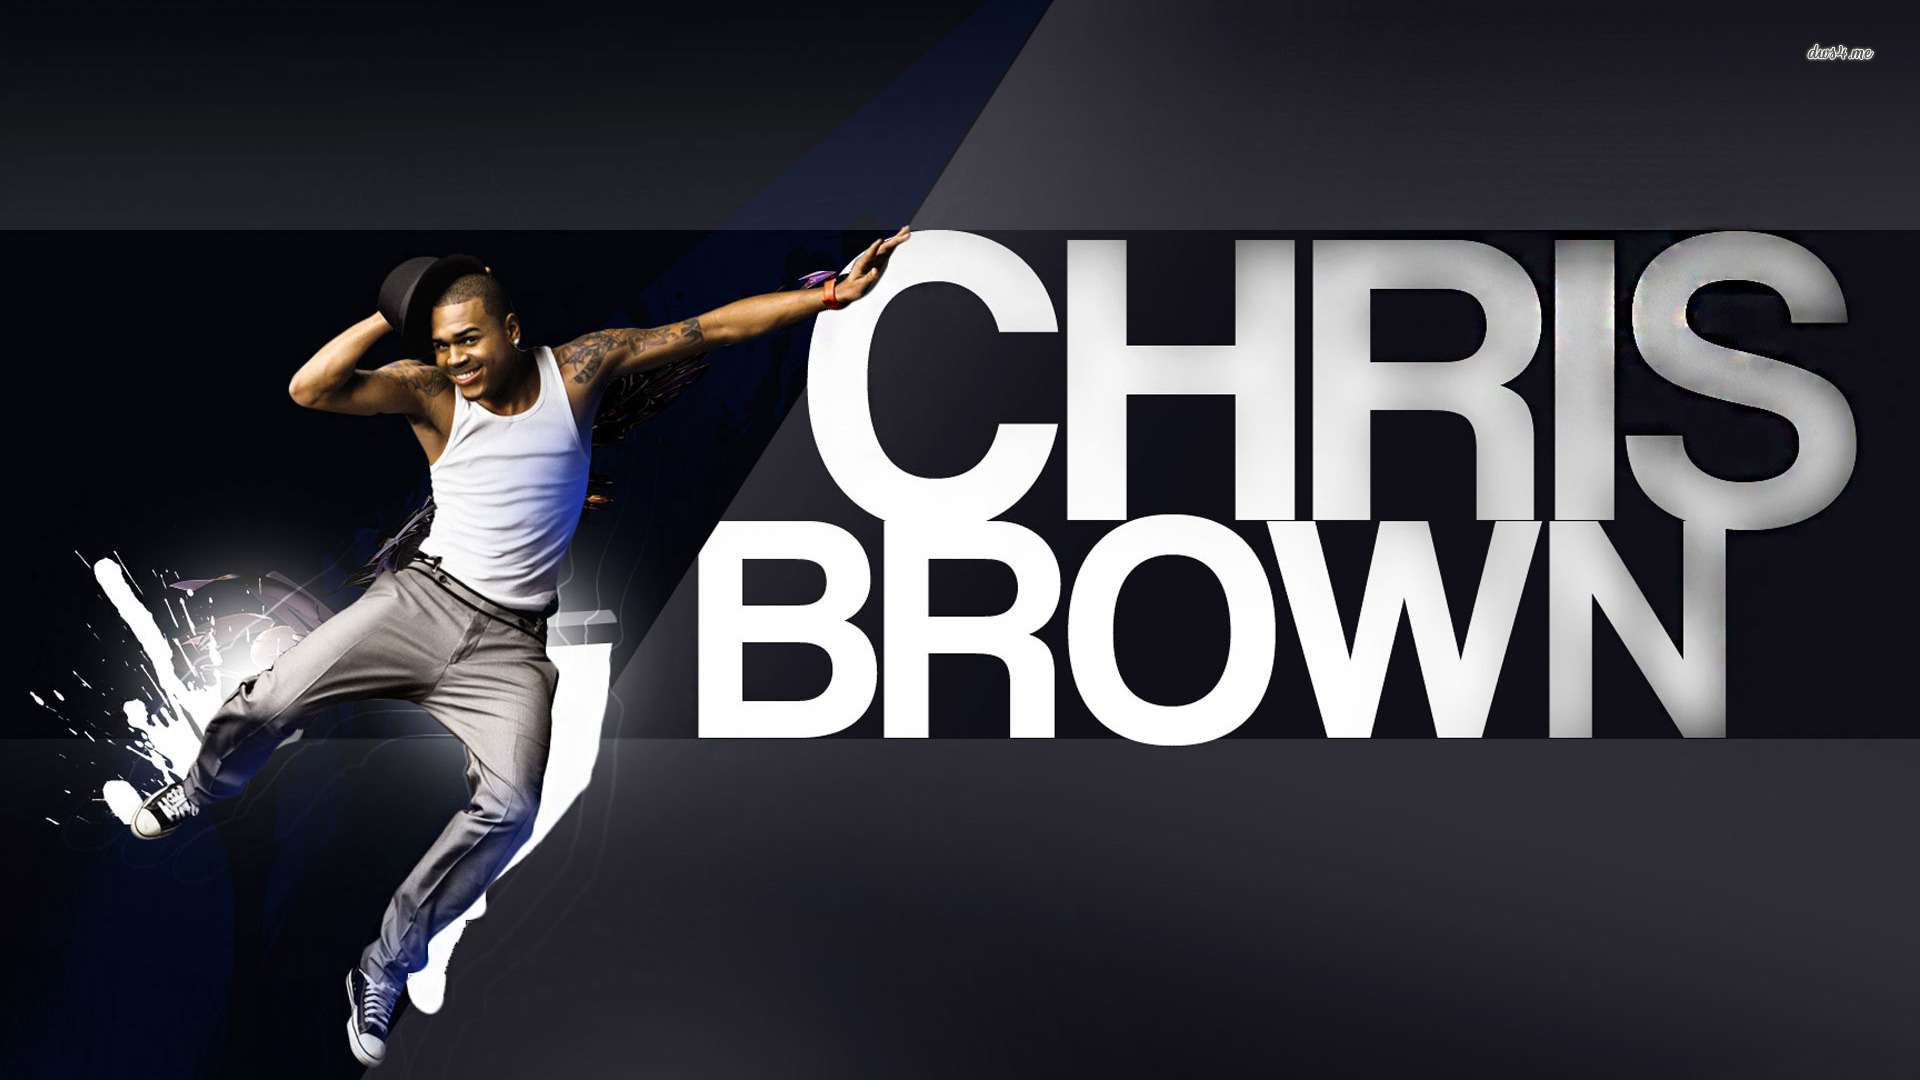 free chris brown wallpaper download